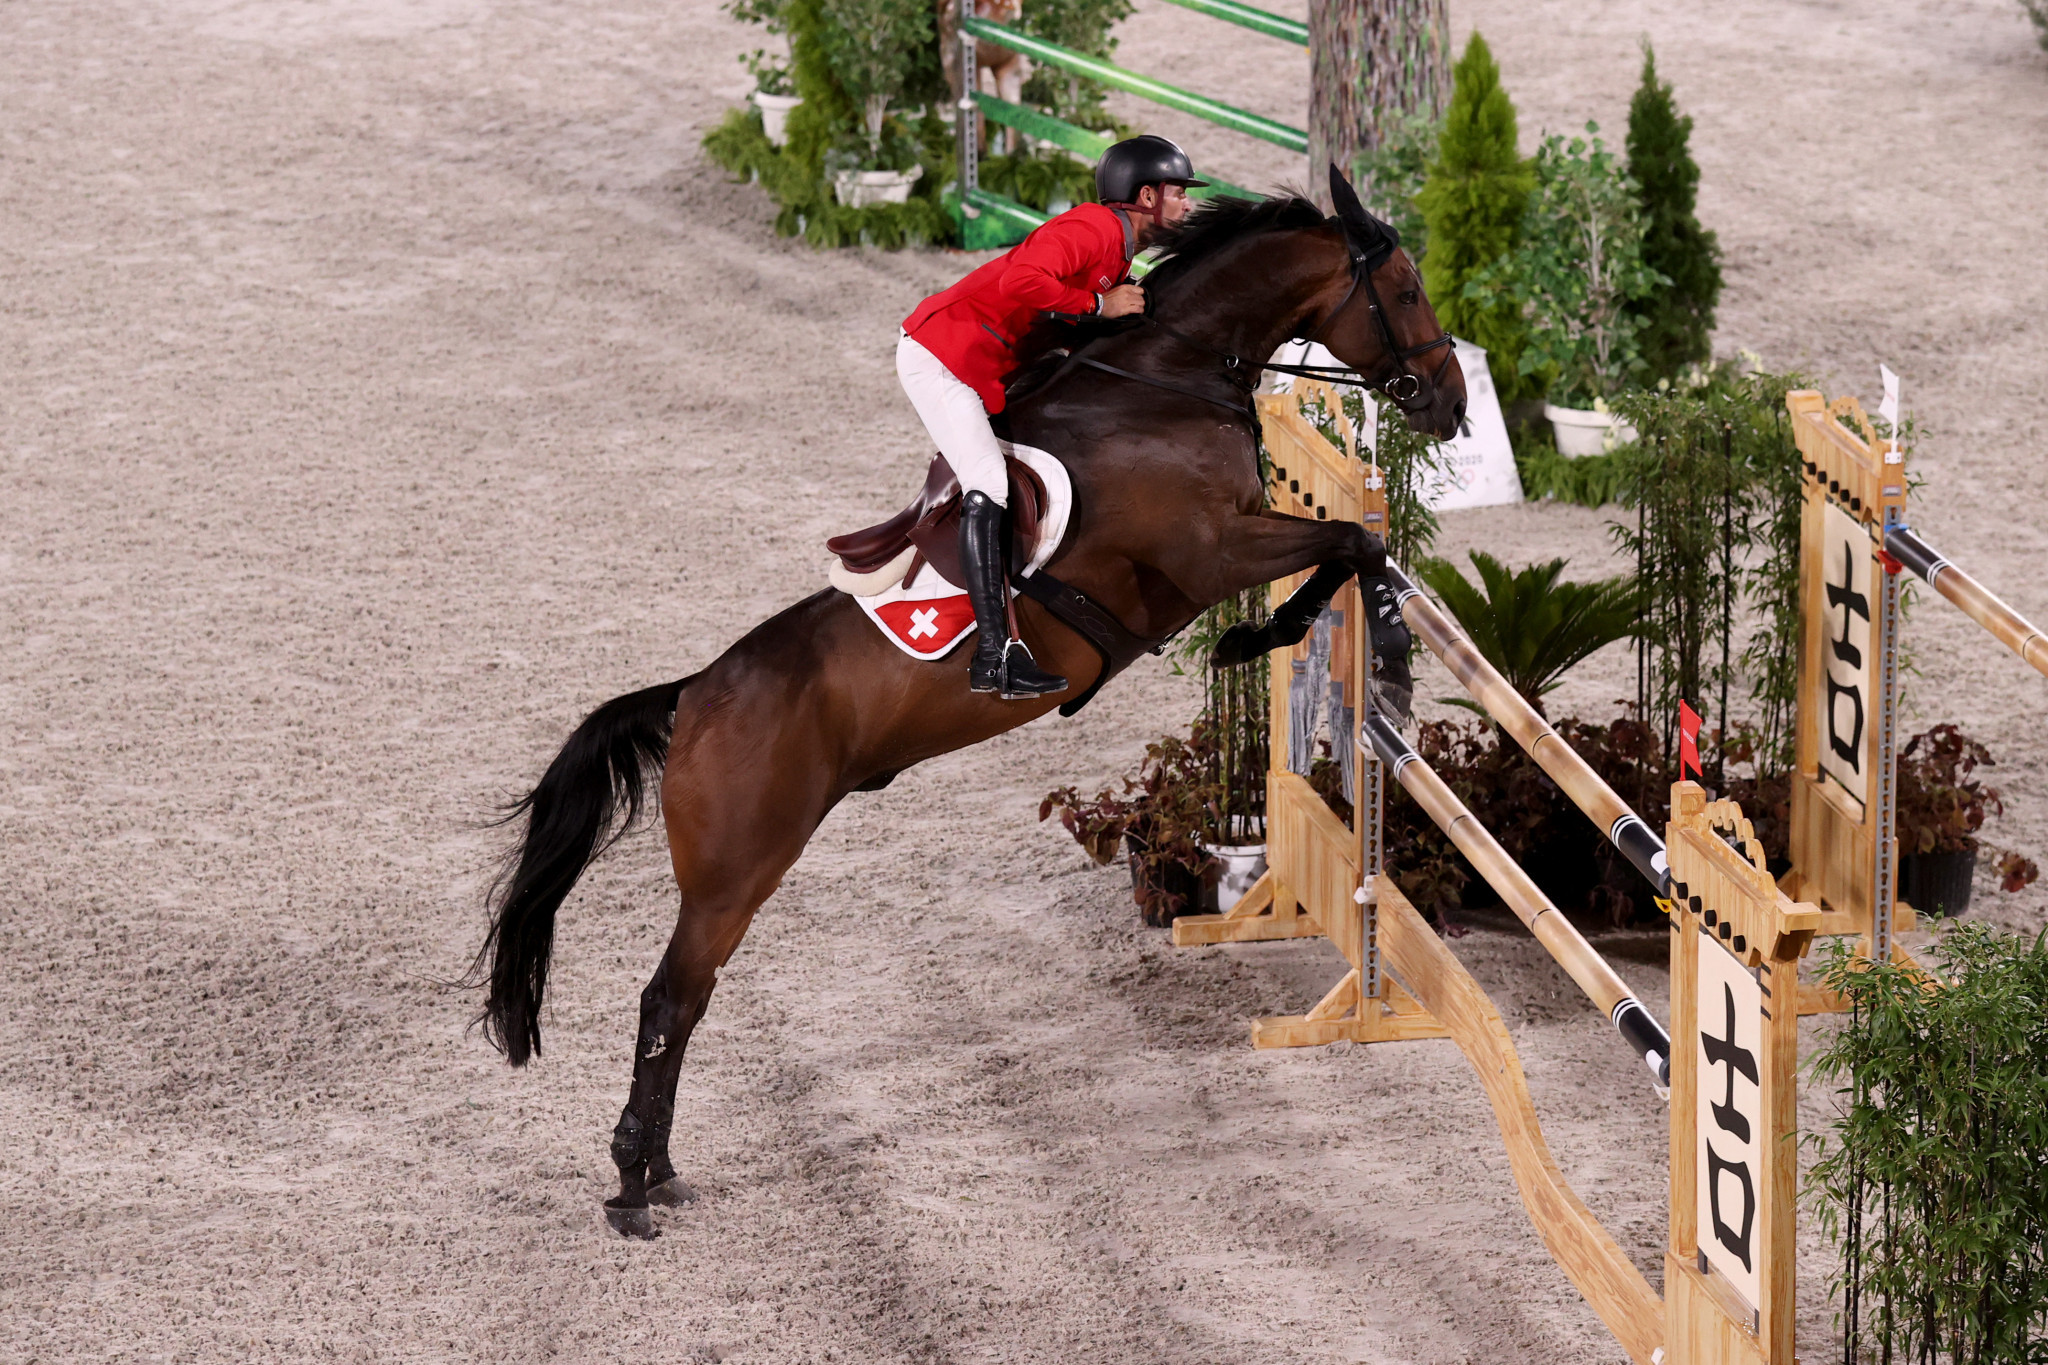 Germany and Switzerland to battle it out in Barcelona at FEI Jumping Nations Cup Final